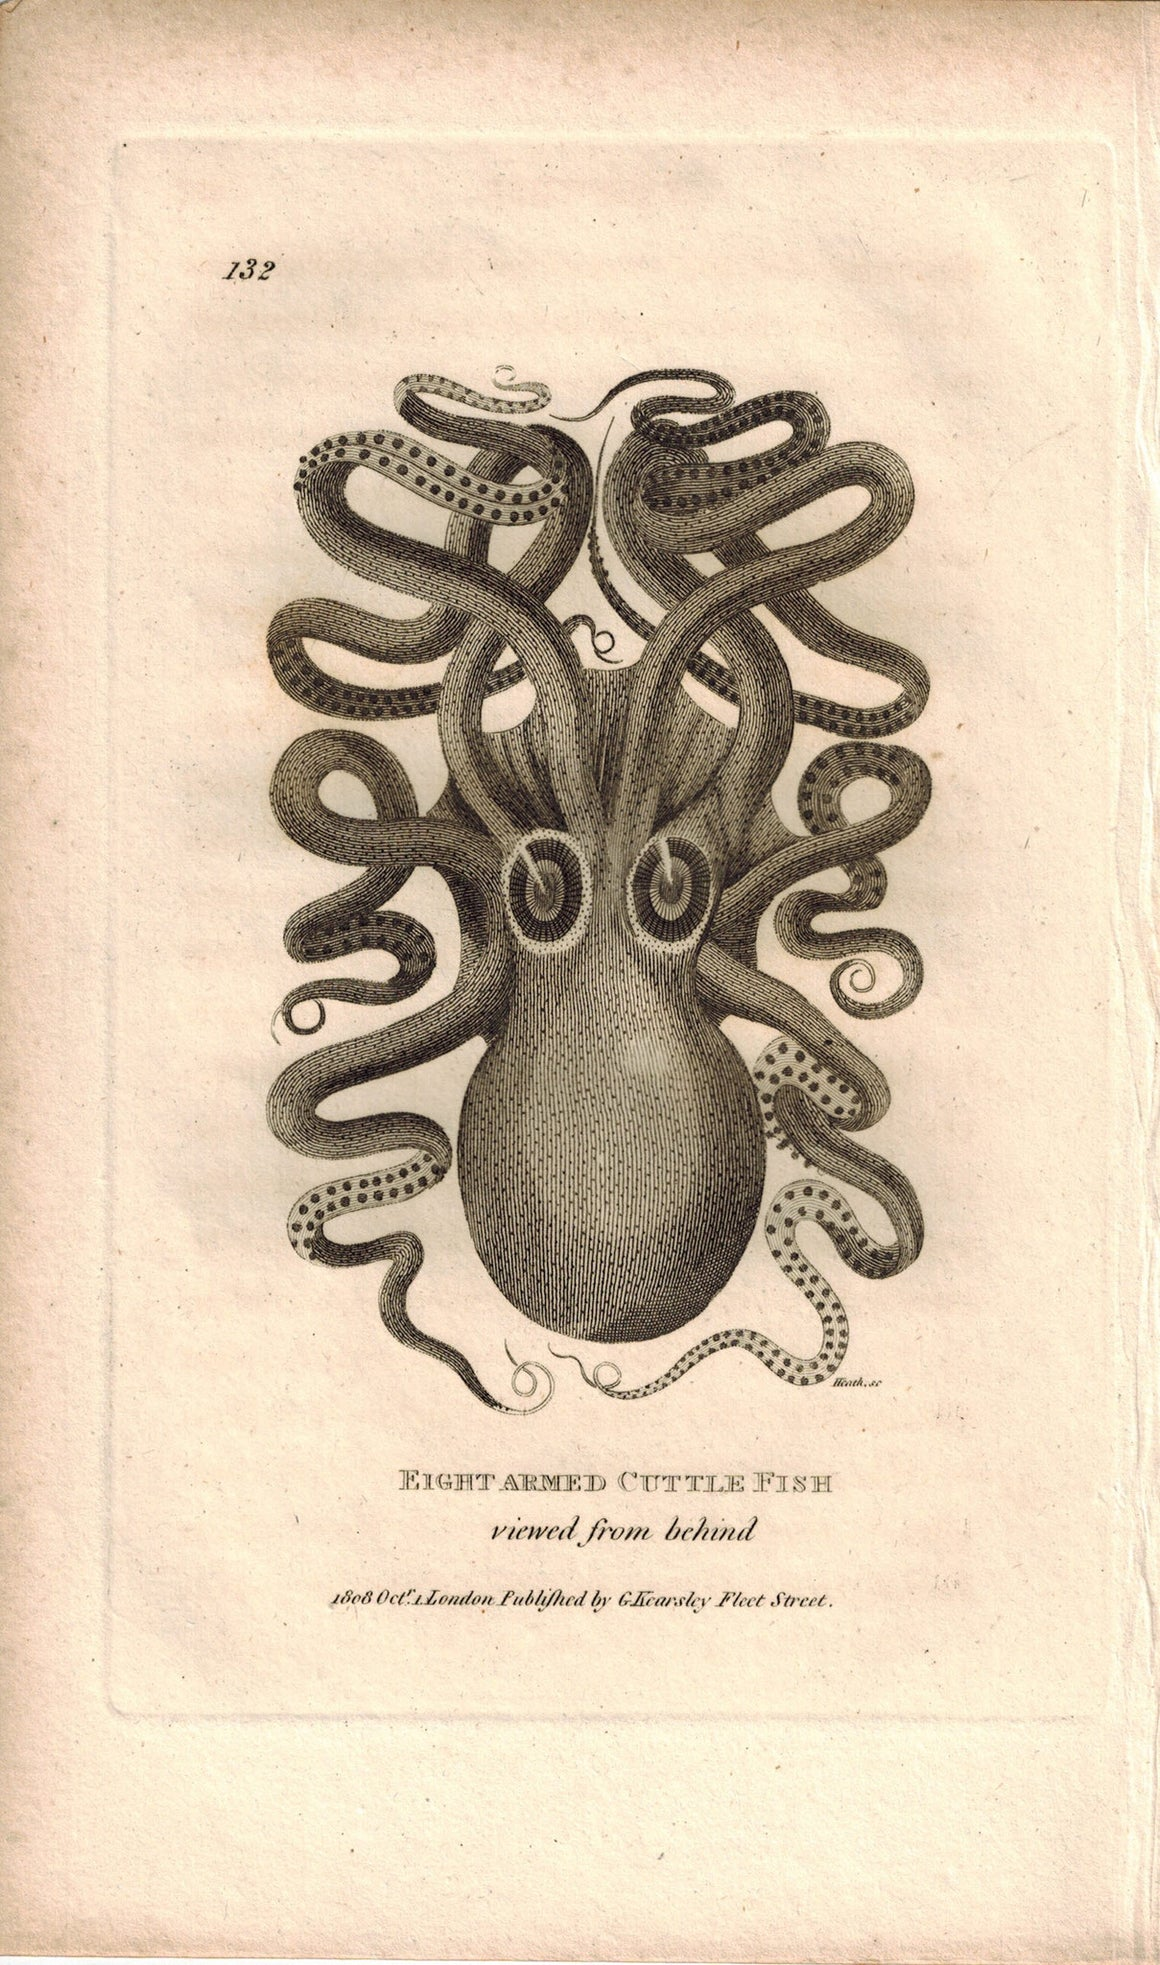 Eight Armed Cuttle Fish 1809 rare Original Engraving Shaw Print Octopus